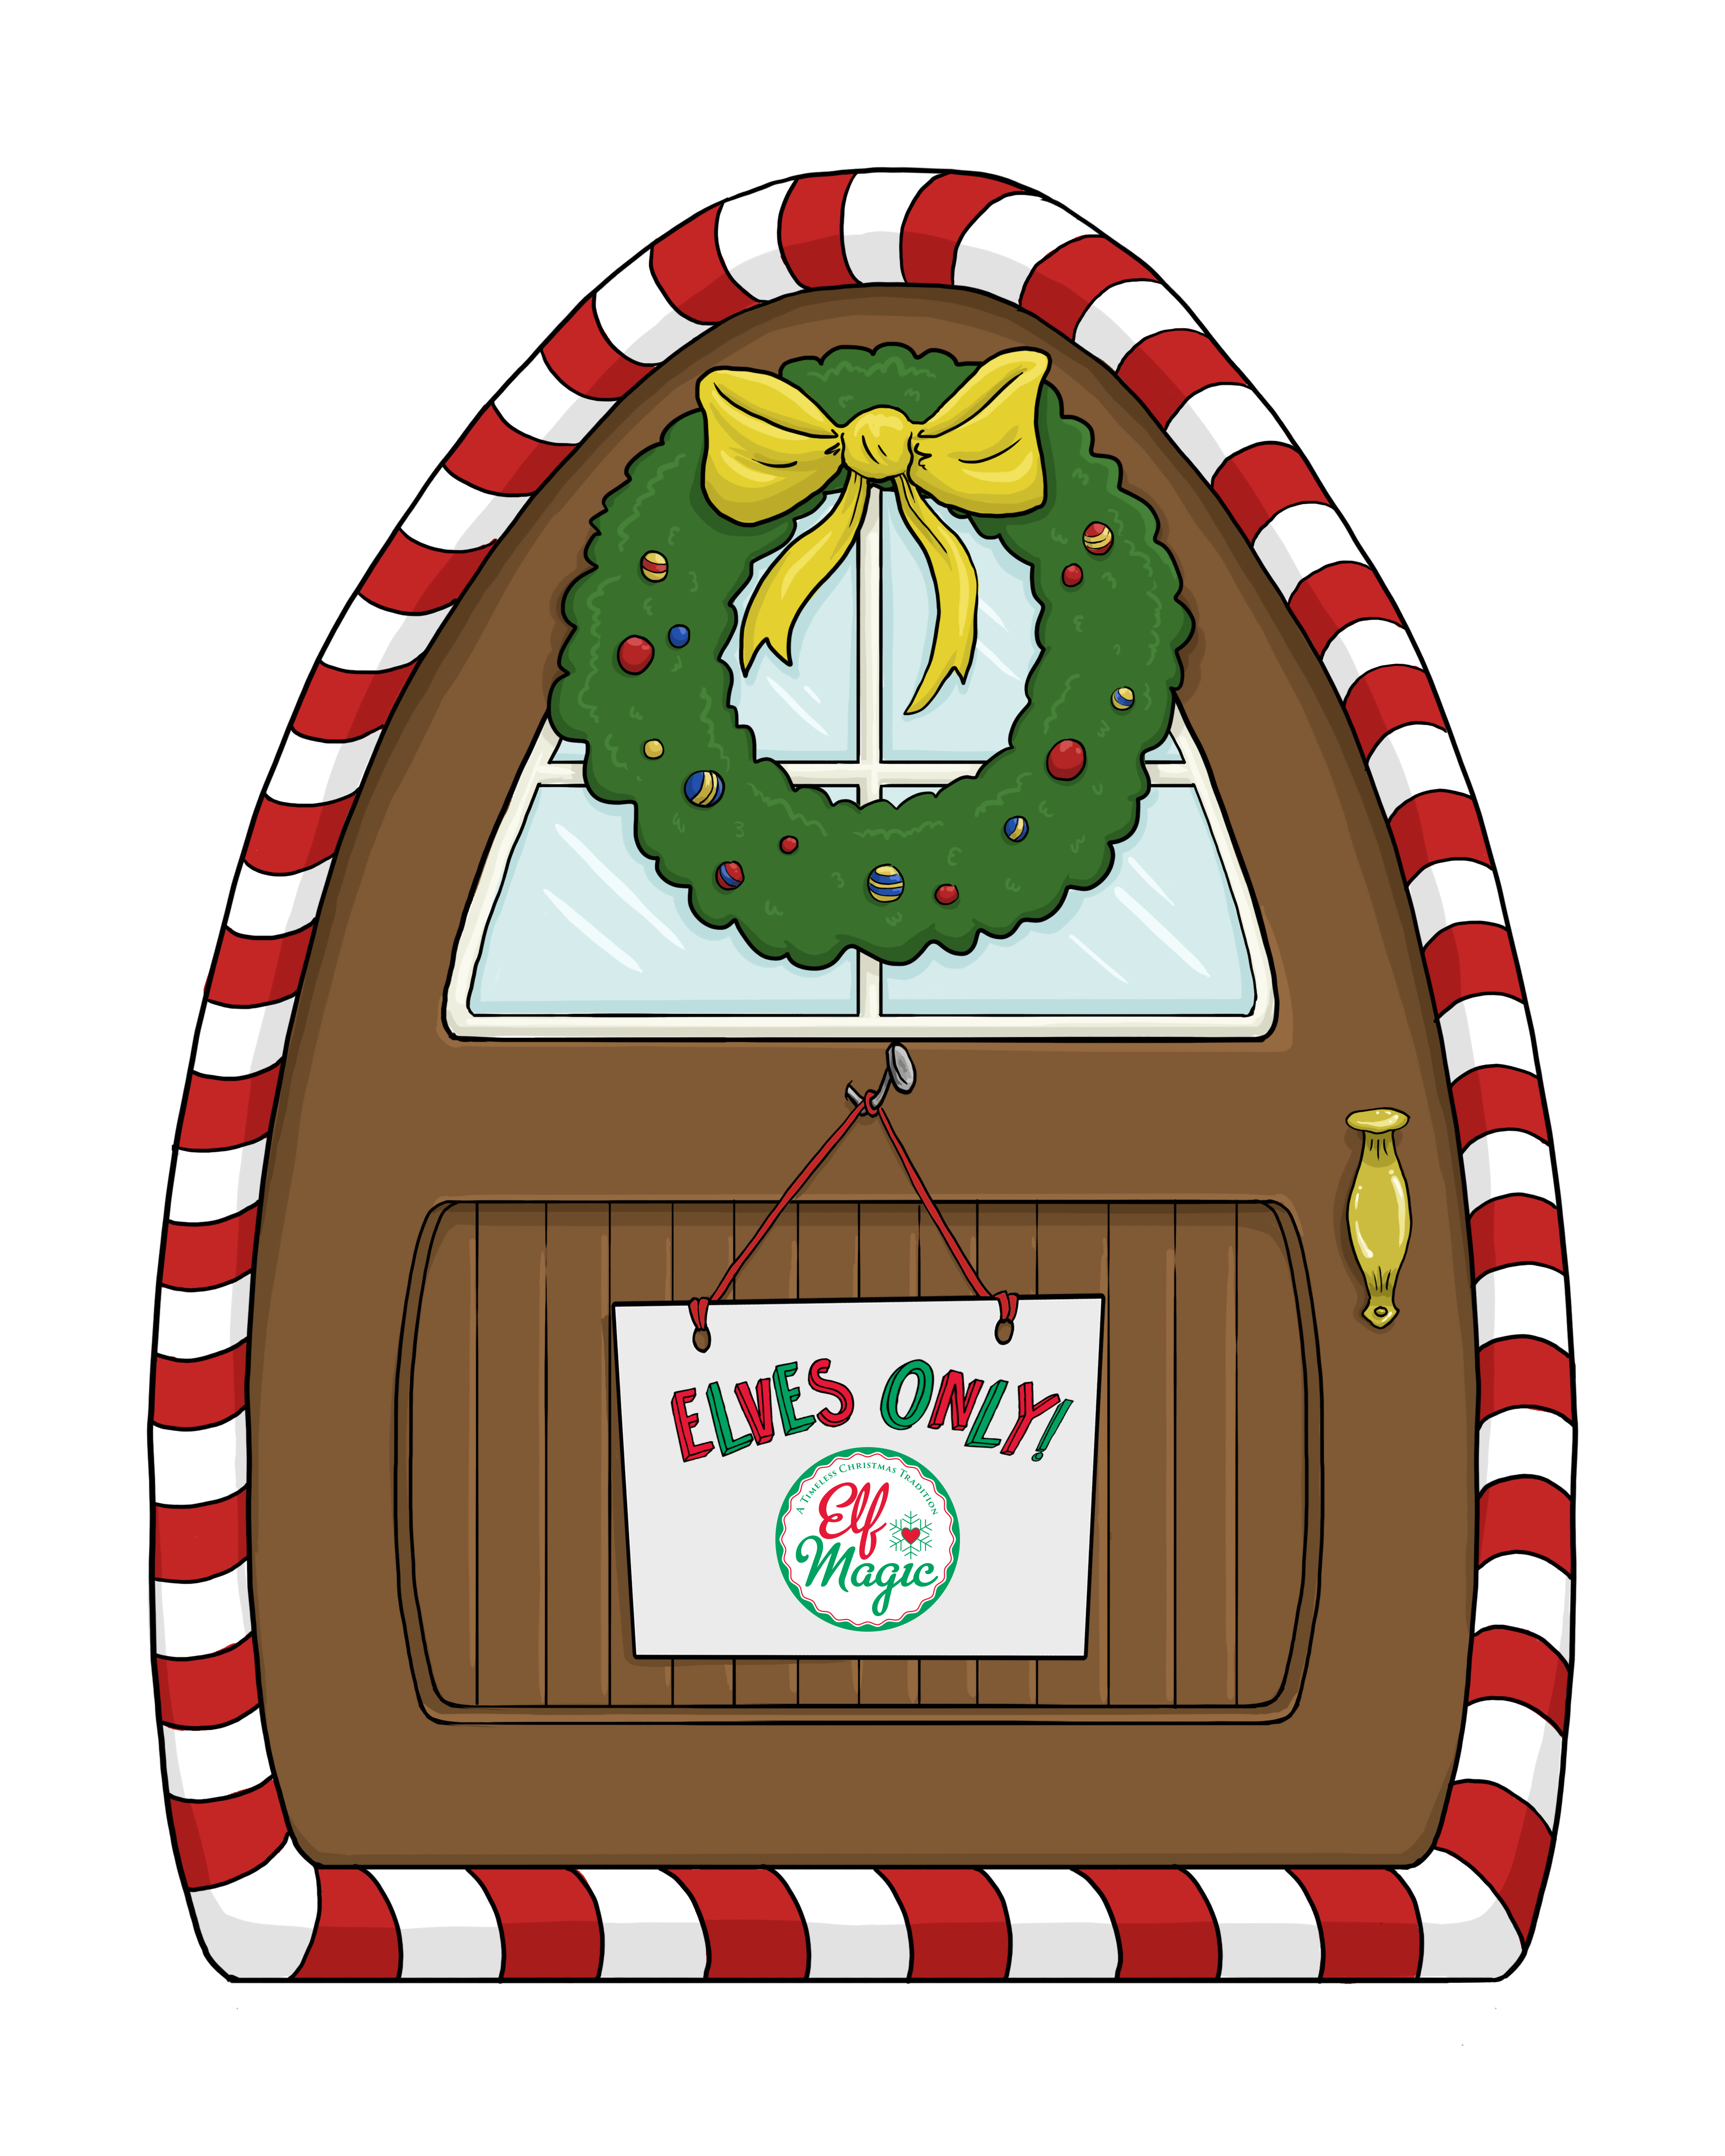 Elf magic elf door elf magic santa 39 s magic elves elf for The magic elf door